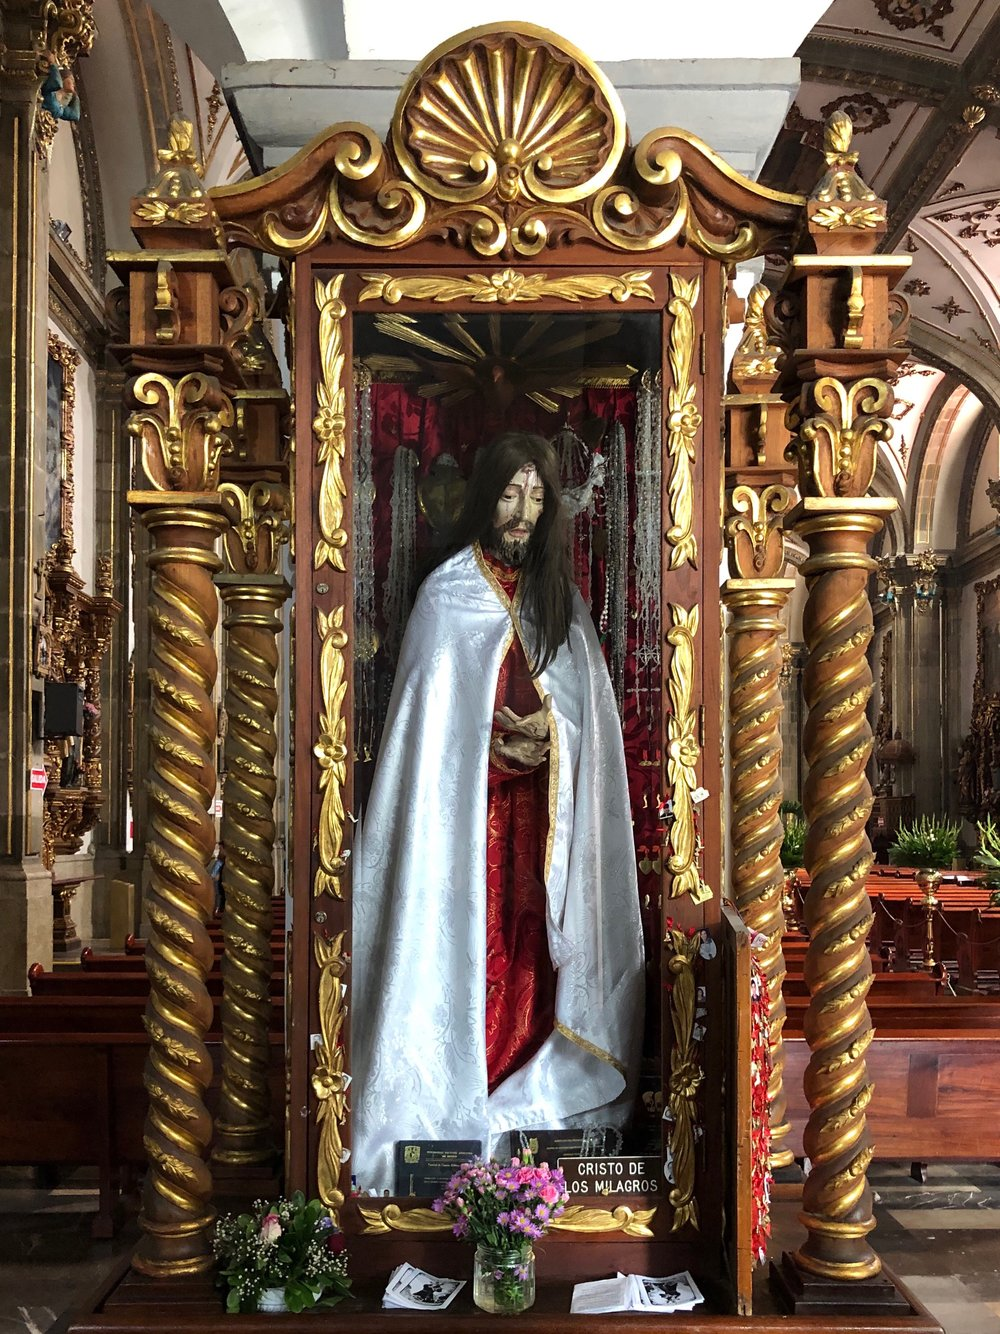 The creepy, life-size Cristo de los Milagros